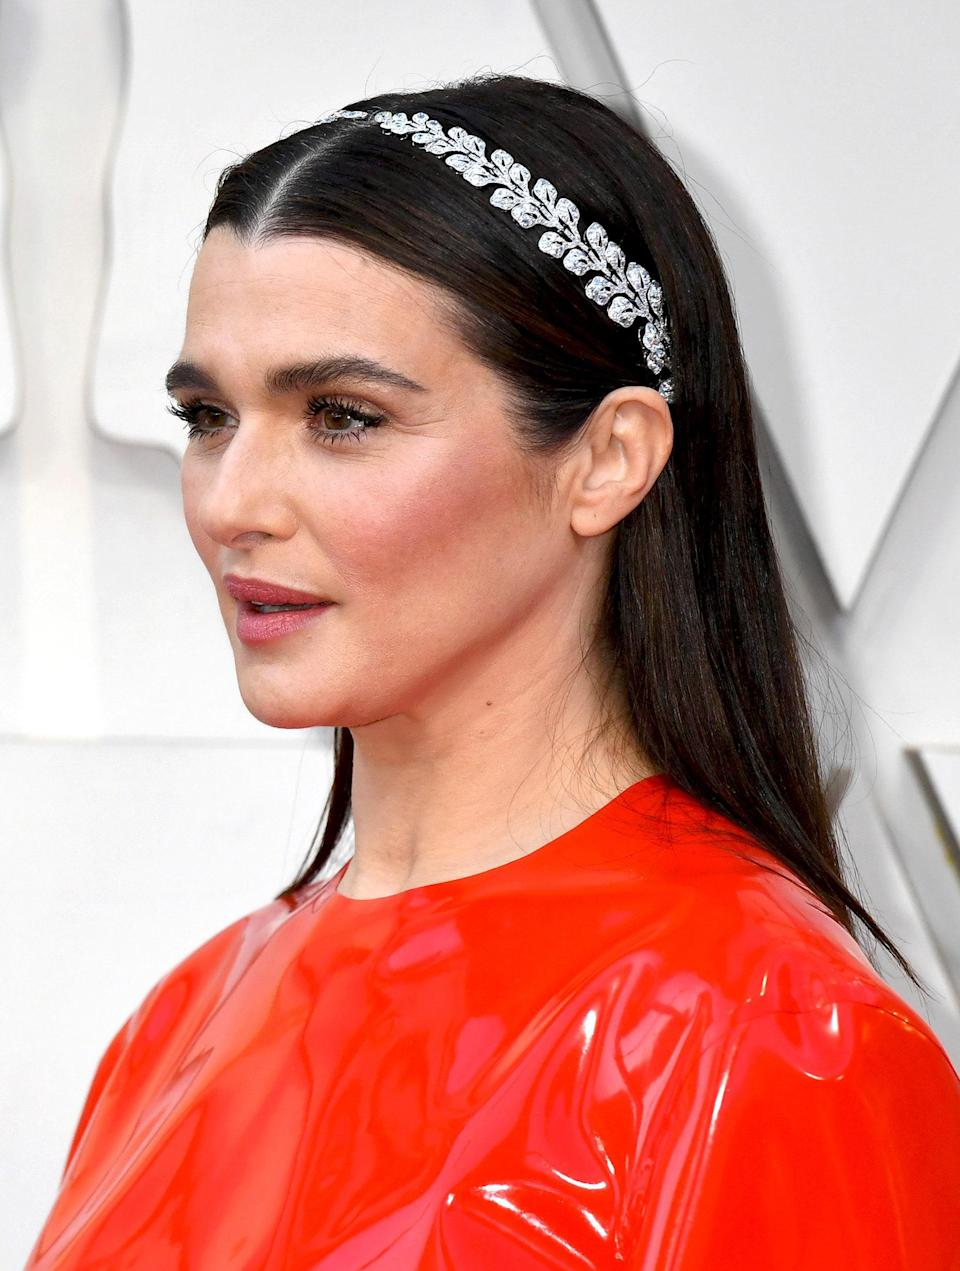 The best fashion moments seamlessly merge old and new. In 2019 Rachel Weisz complimented the futurism of the Givenchy Haute Couture gown with vintage Cartier pieces from 1903. Two matching diamond and platinum brooches were combined to create Weisz's headband, creating an arresting final touch that elevated her entire look.